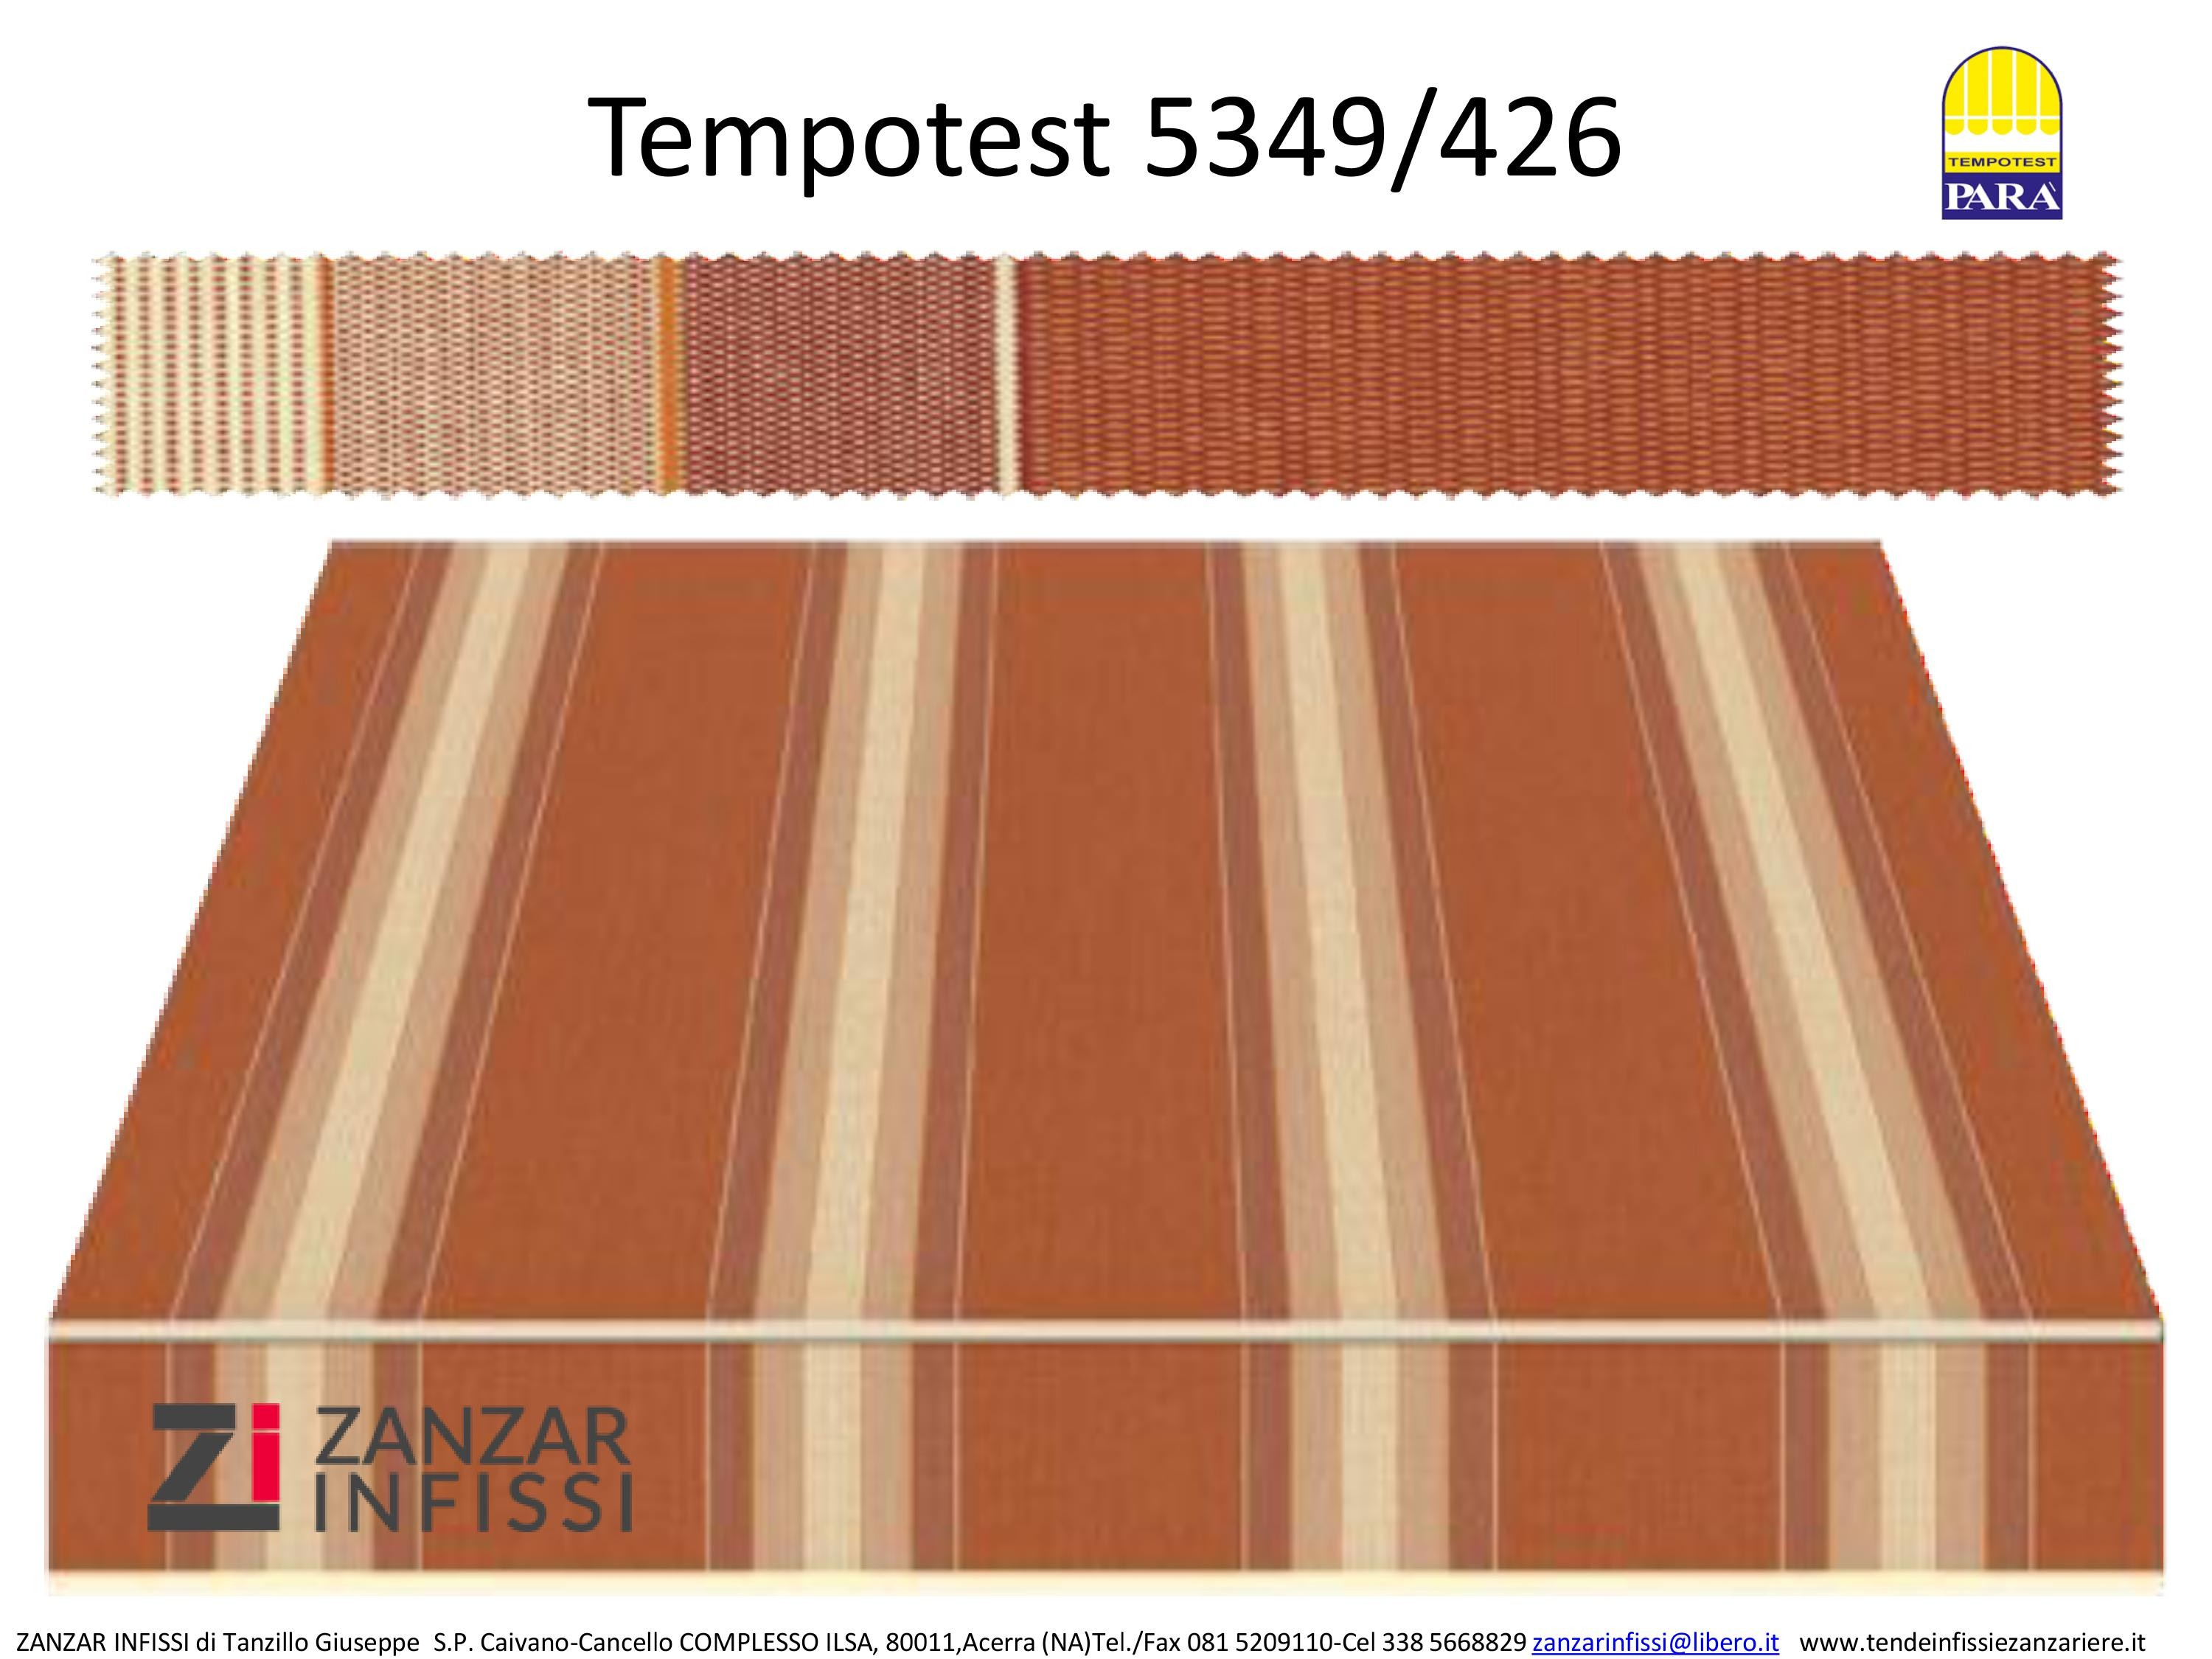 Tempotest 5349/426